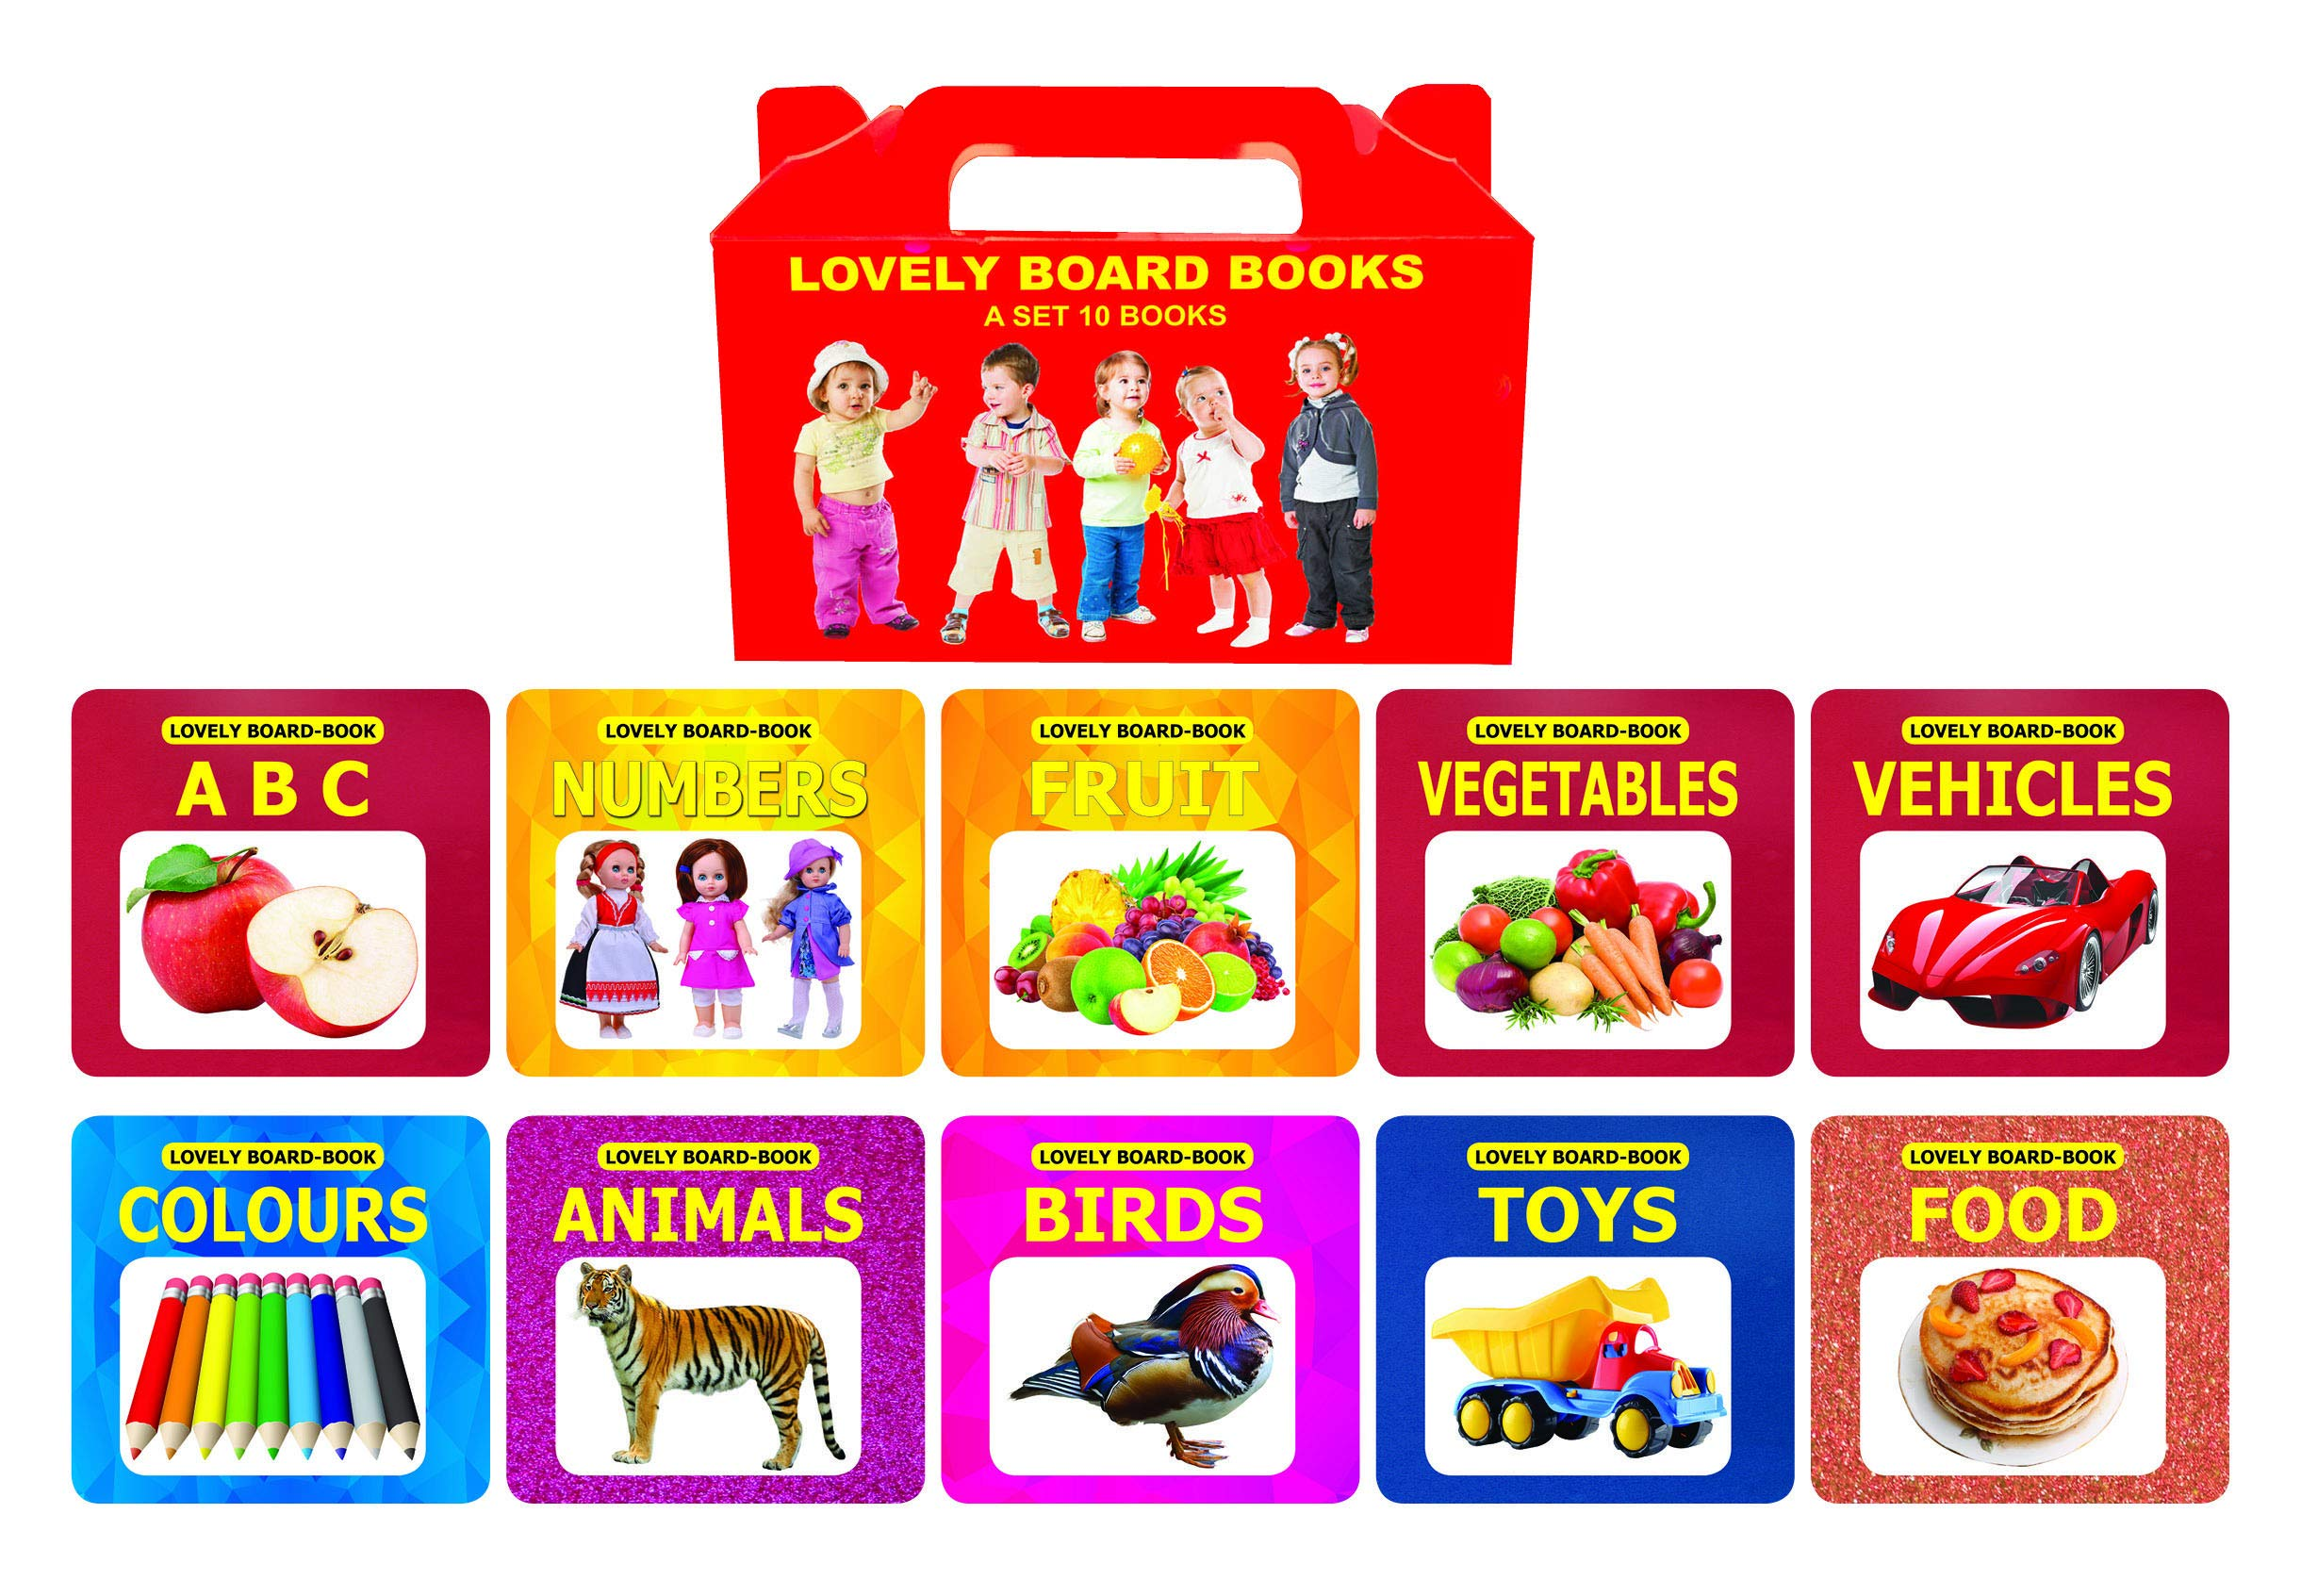 Lovely Board Books (A Set of 10 Books)